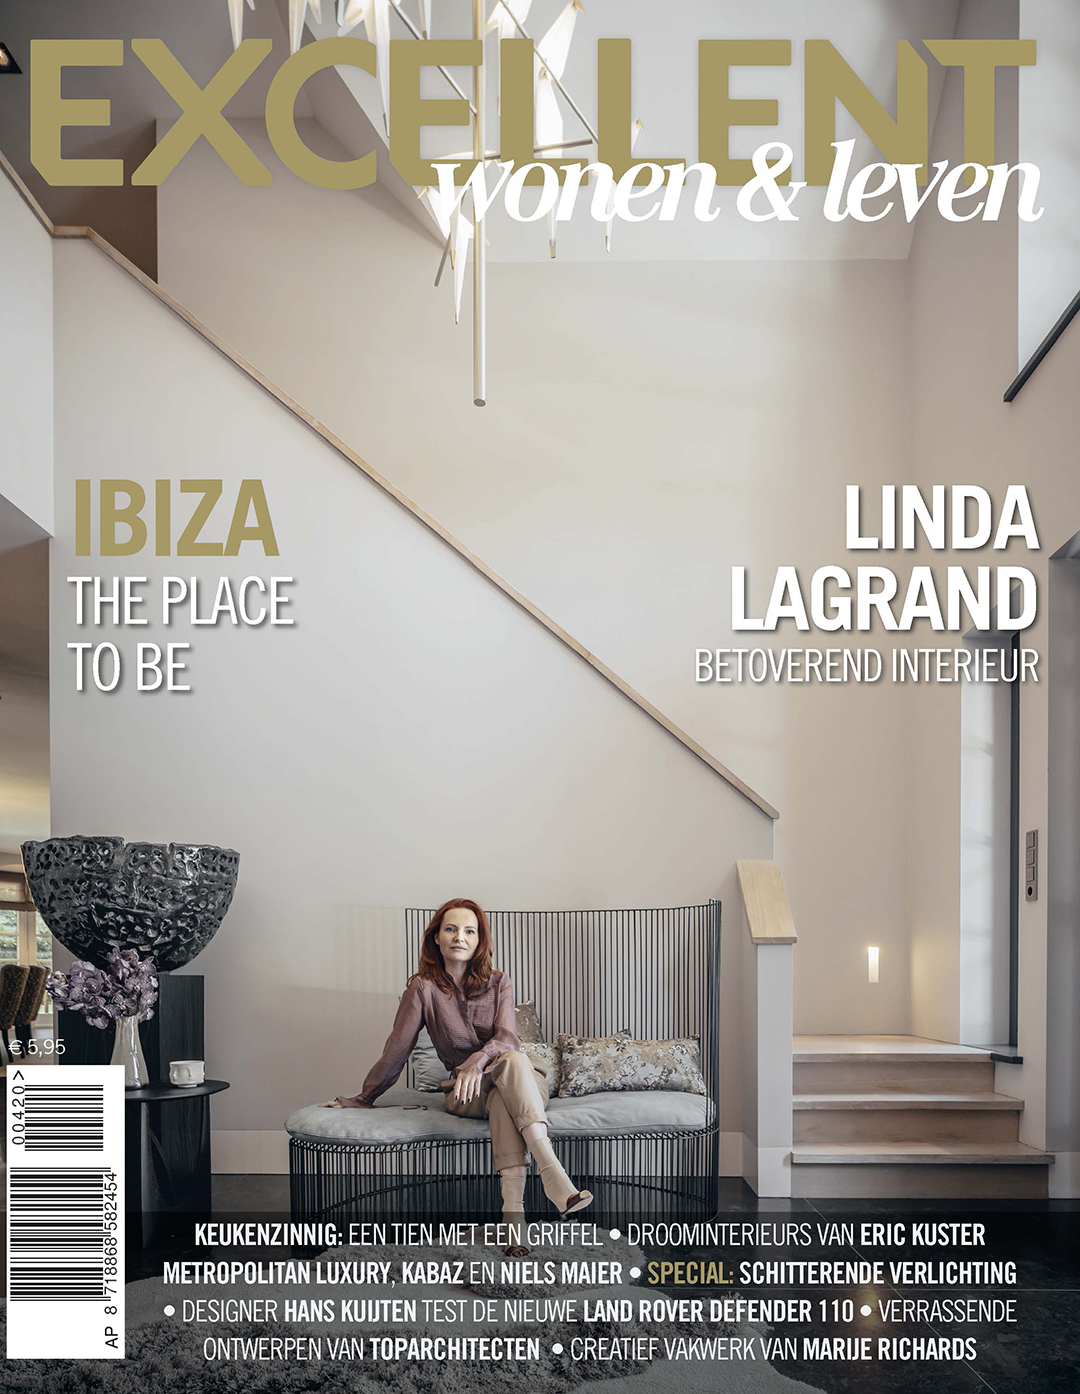 ON THE COVER!